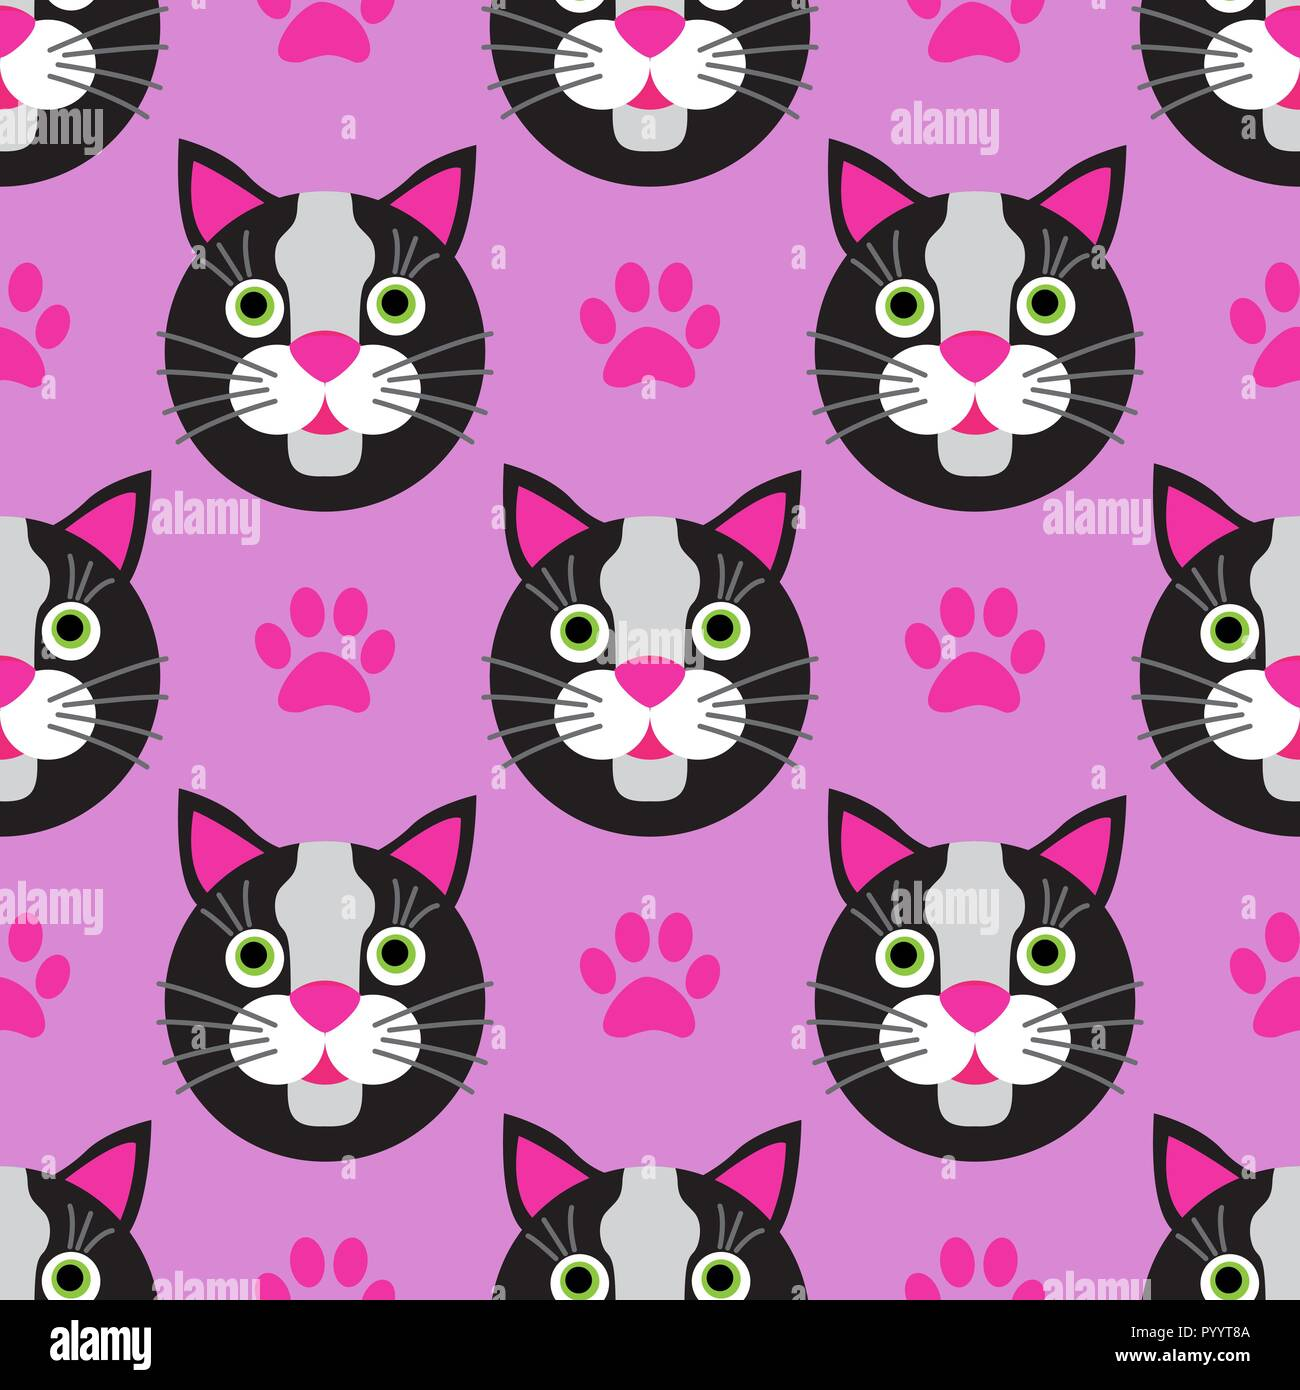 Cute cats faces seamless kids pink pattern - Stock Vector